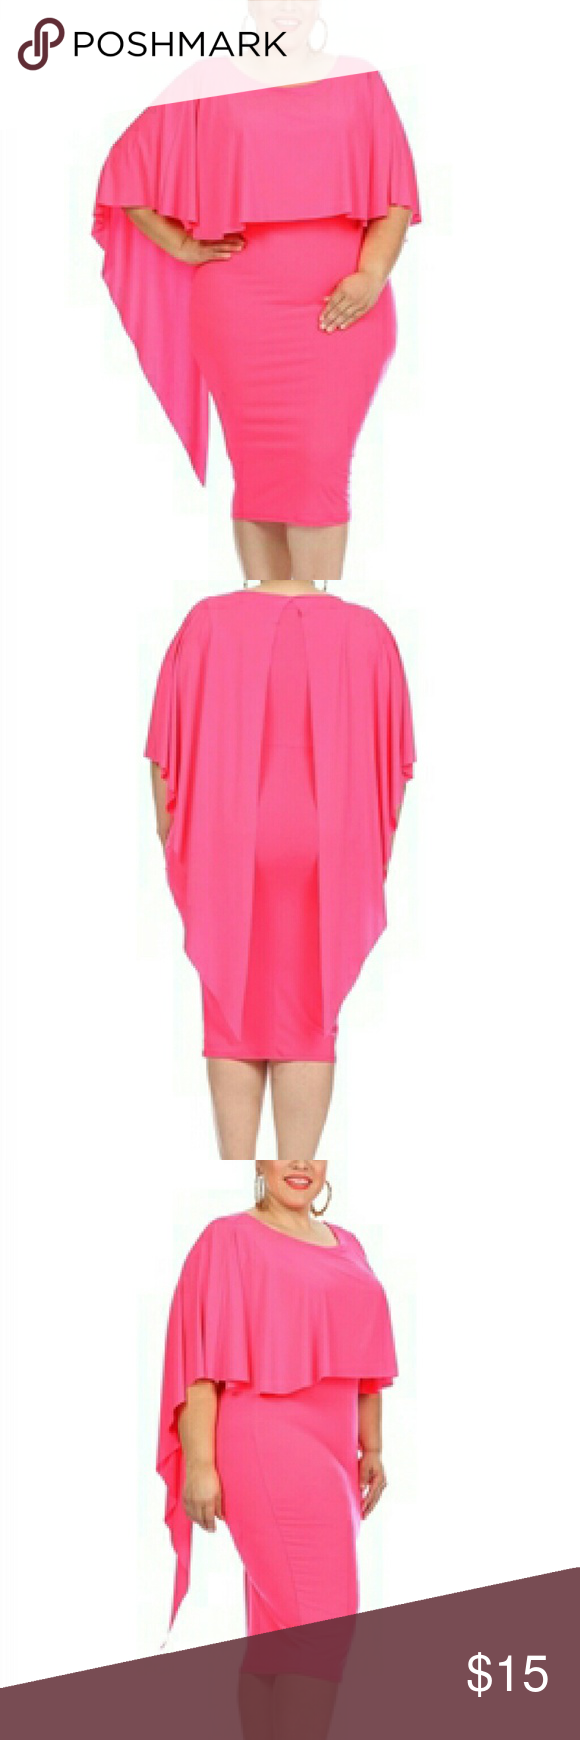 Plus Size Waterfall Cape Hot Pink Dress NWT | Muchas y Vestiditos